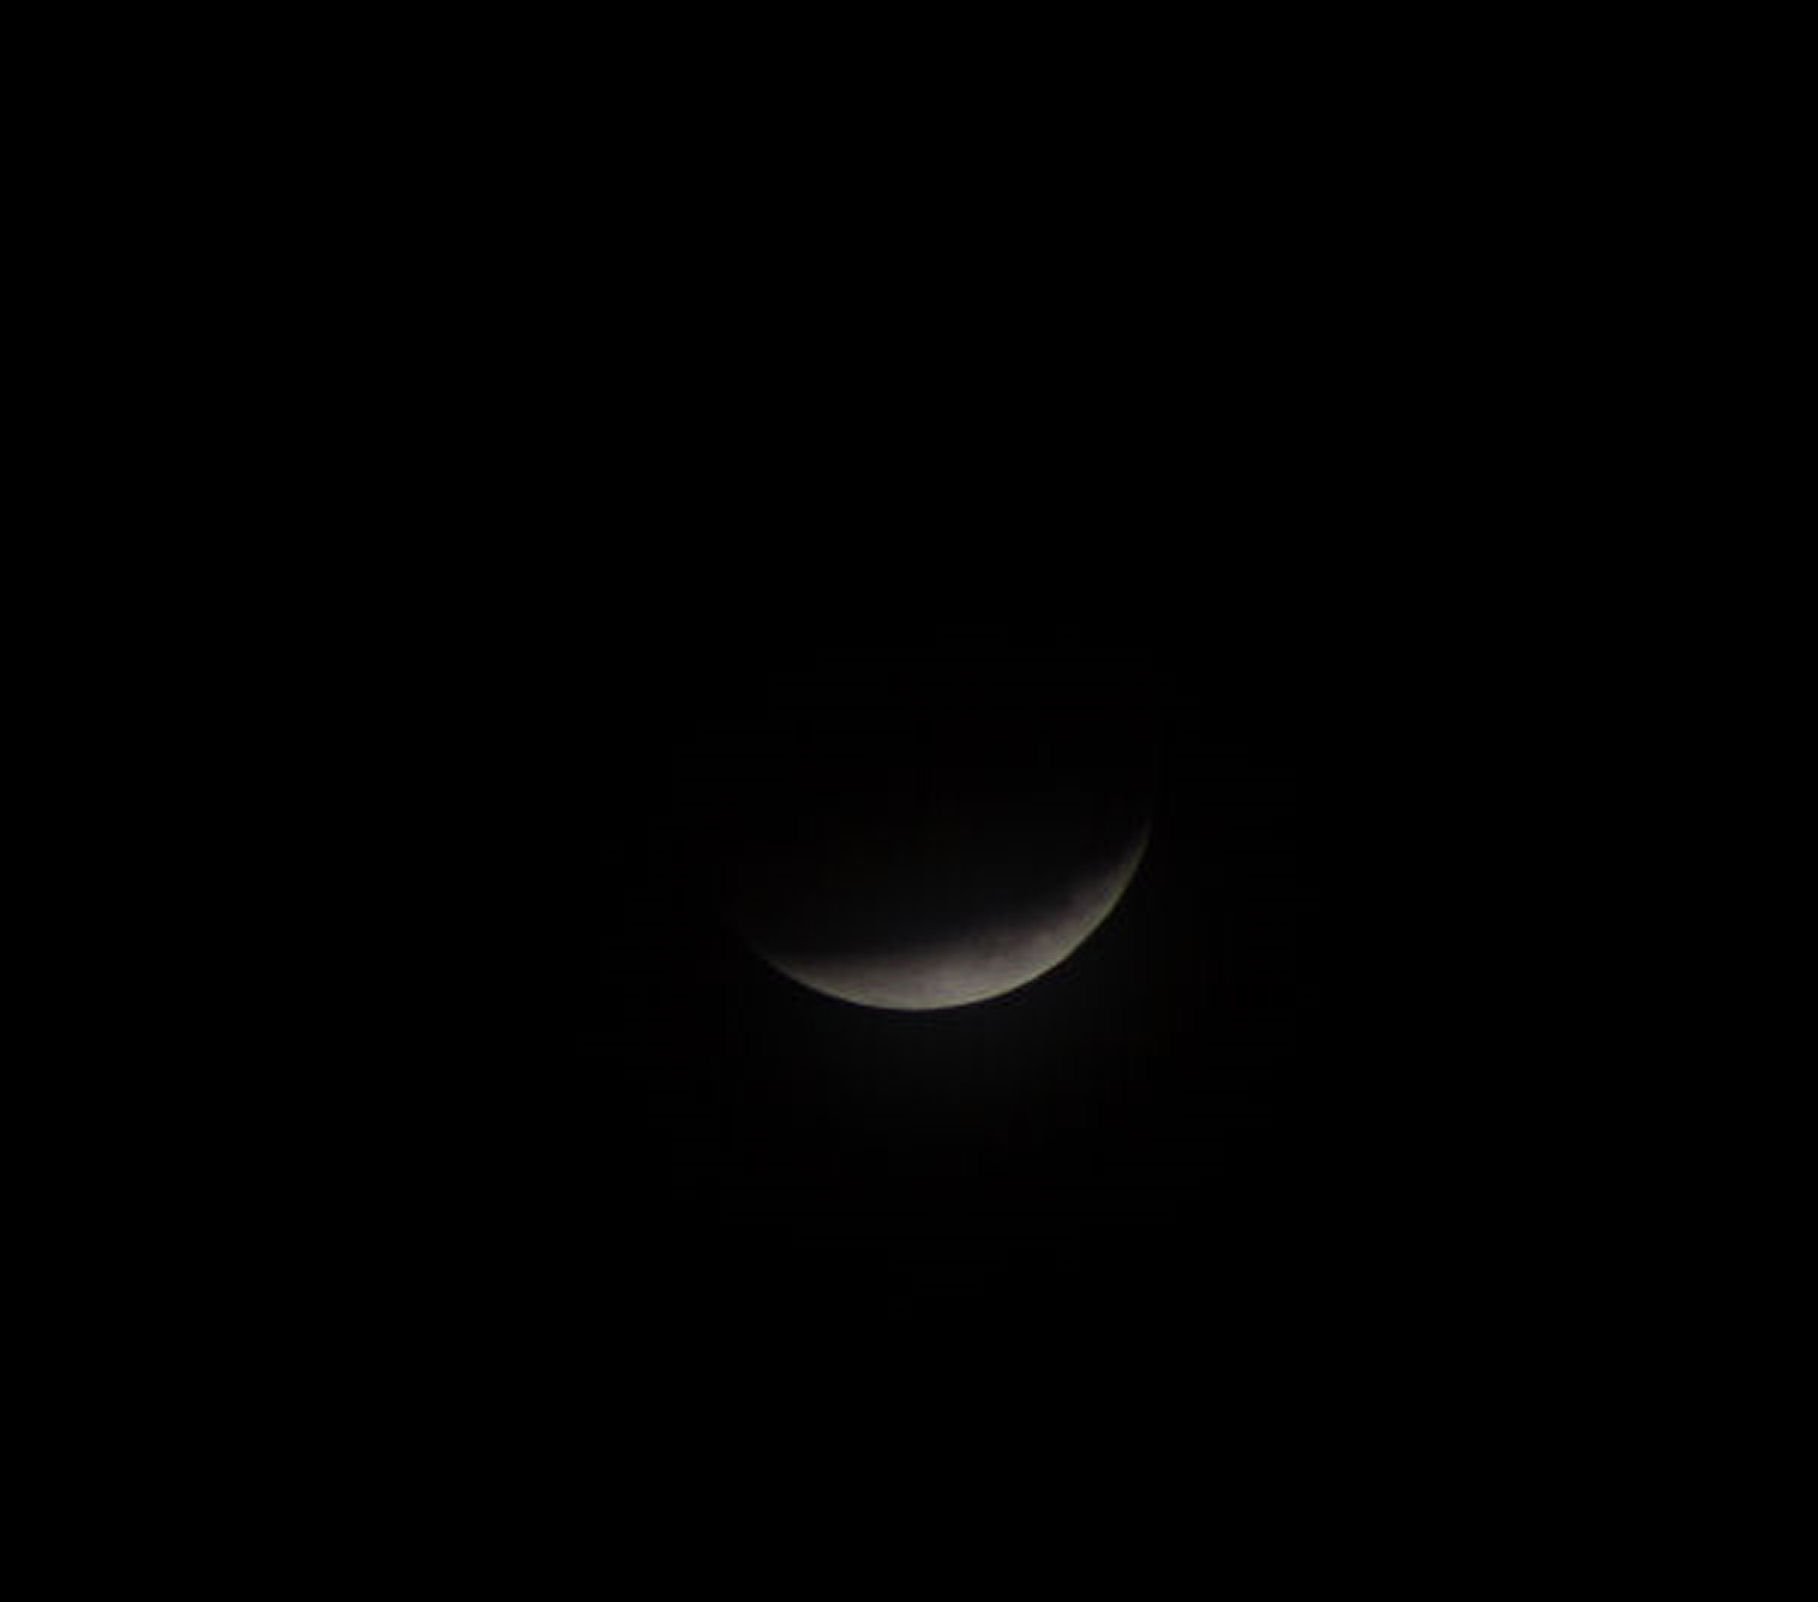 Lunar Eclipse By Andy Heenan .  Canon EOS 6000D f/5.6.  1/40th second.  ISO-400